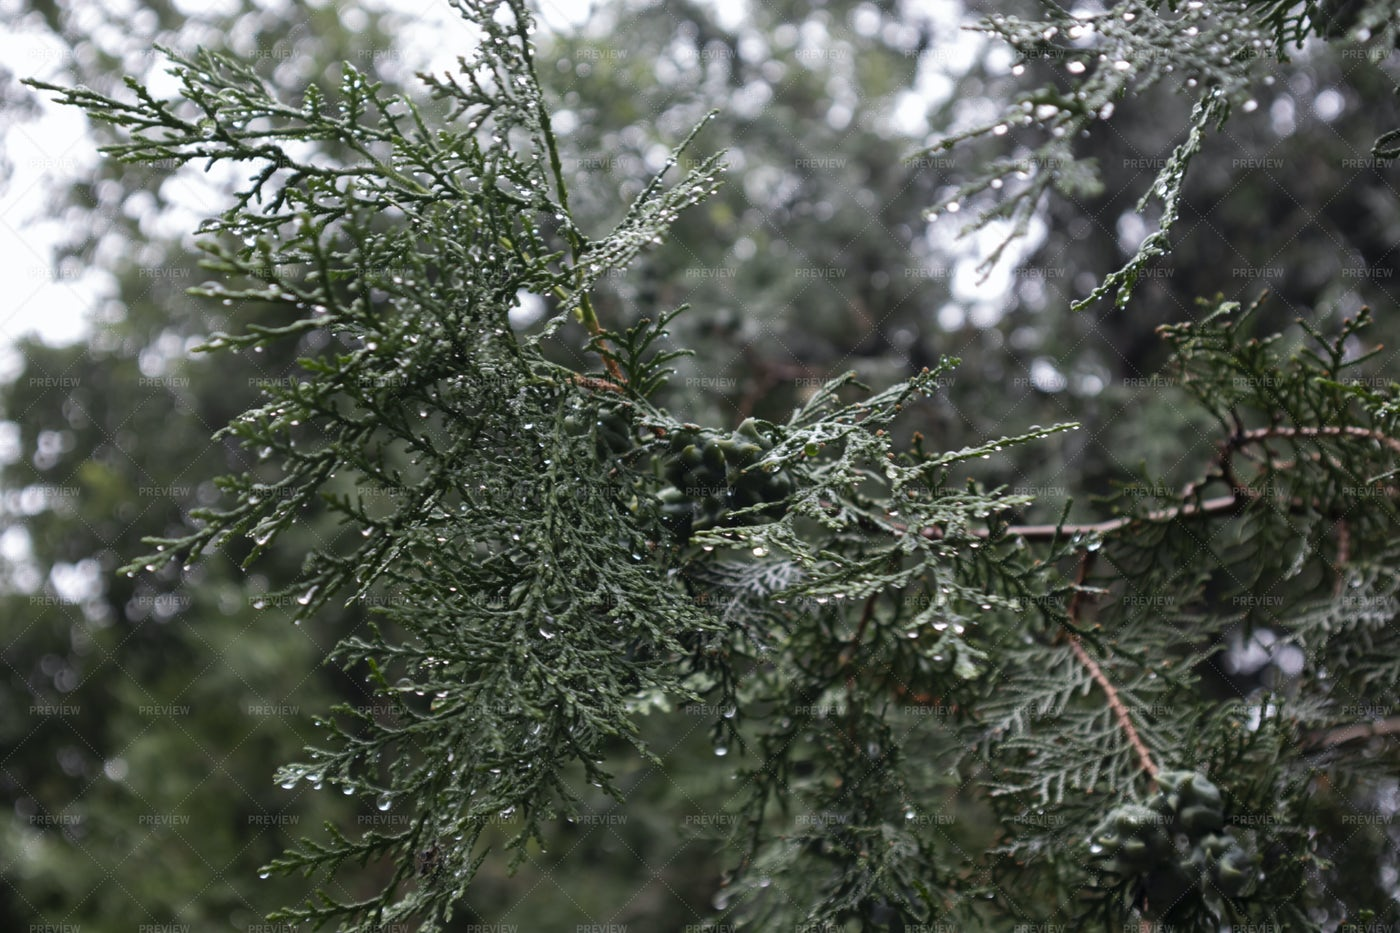 Rain Covered Tree Branches: Stock Photos